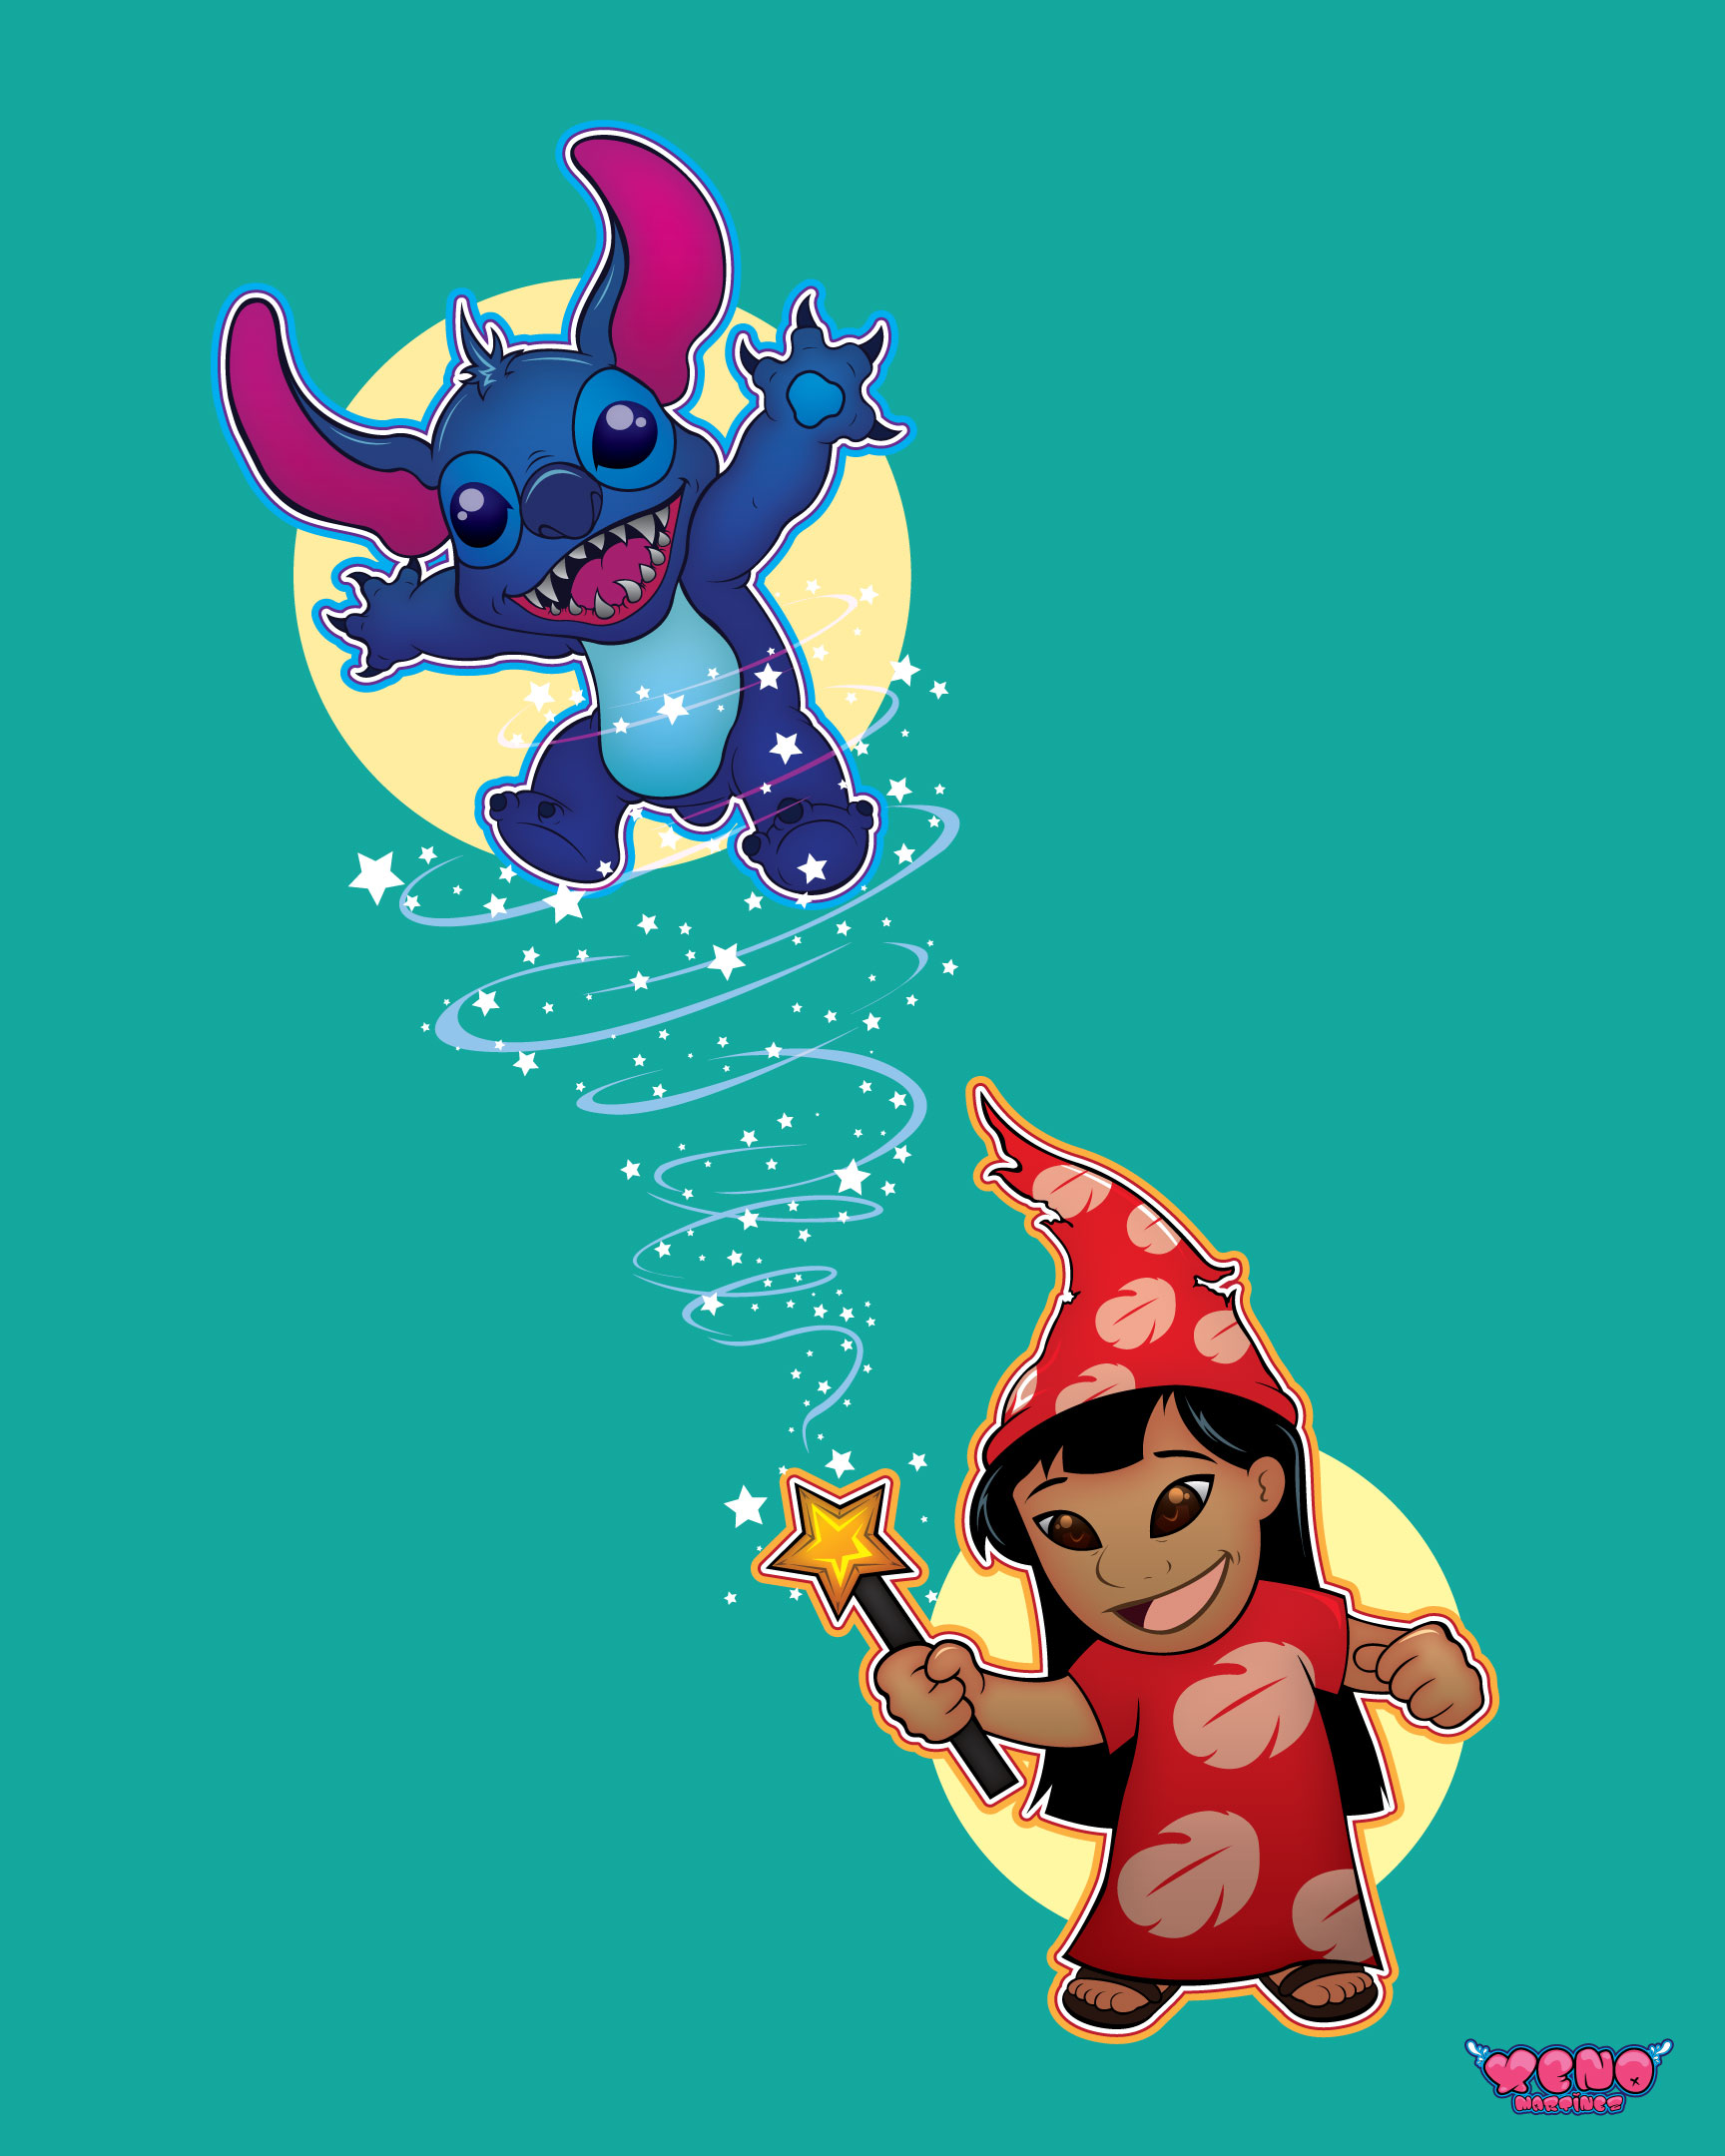 Lilo the witch (November, 2015)